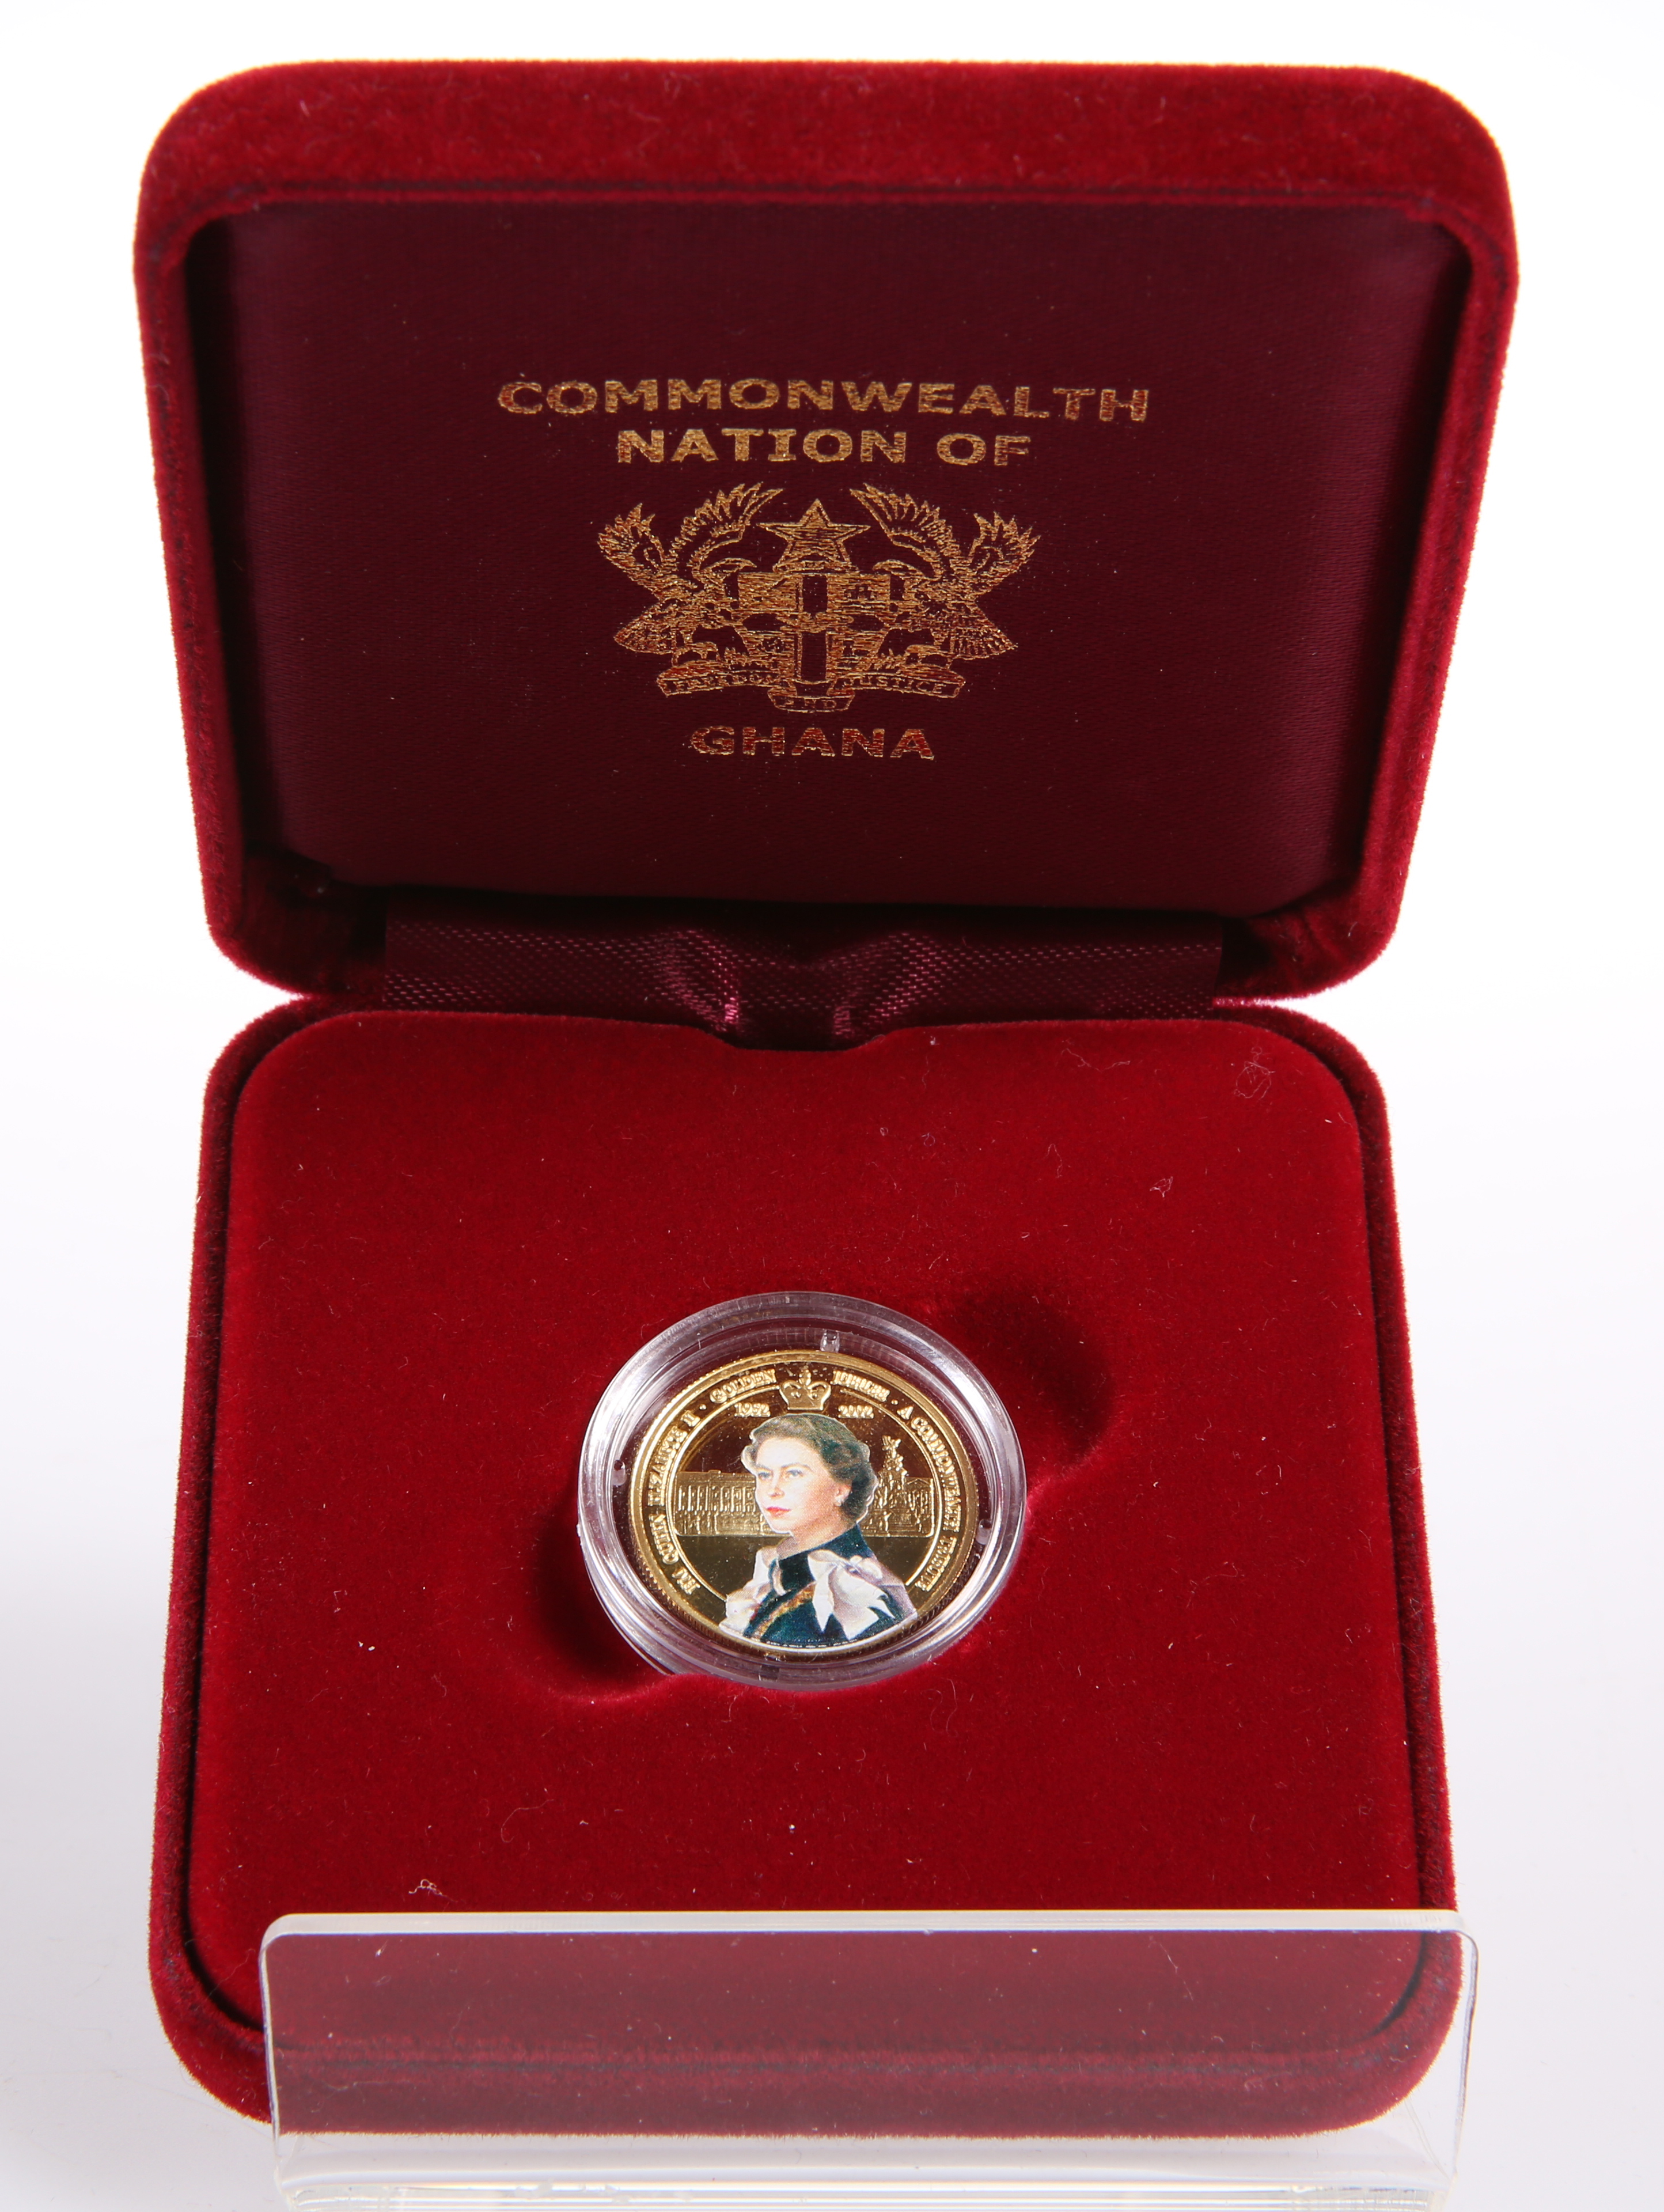 A GHANIAN 500 SIKA 9 CARAT GOLD AND ENAMELLED COMMONWEALTH TRIBUTE COIN, boxed